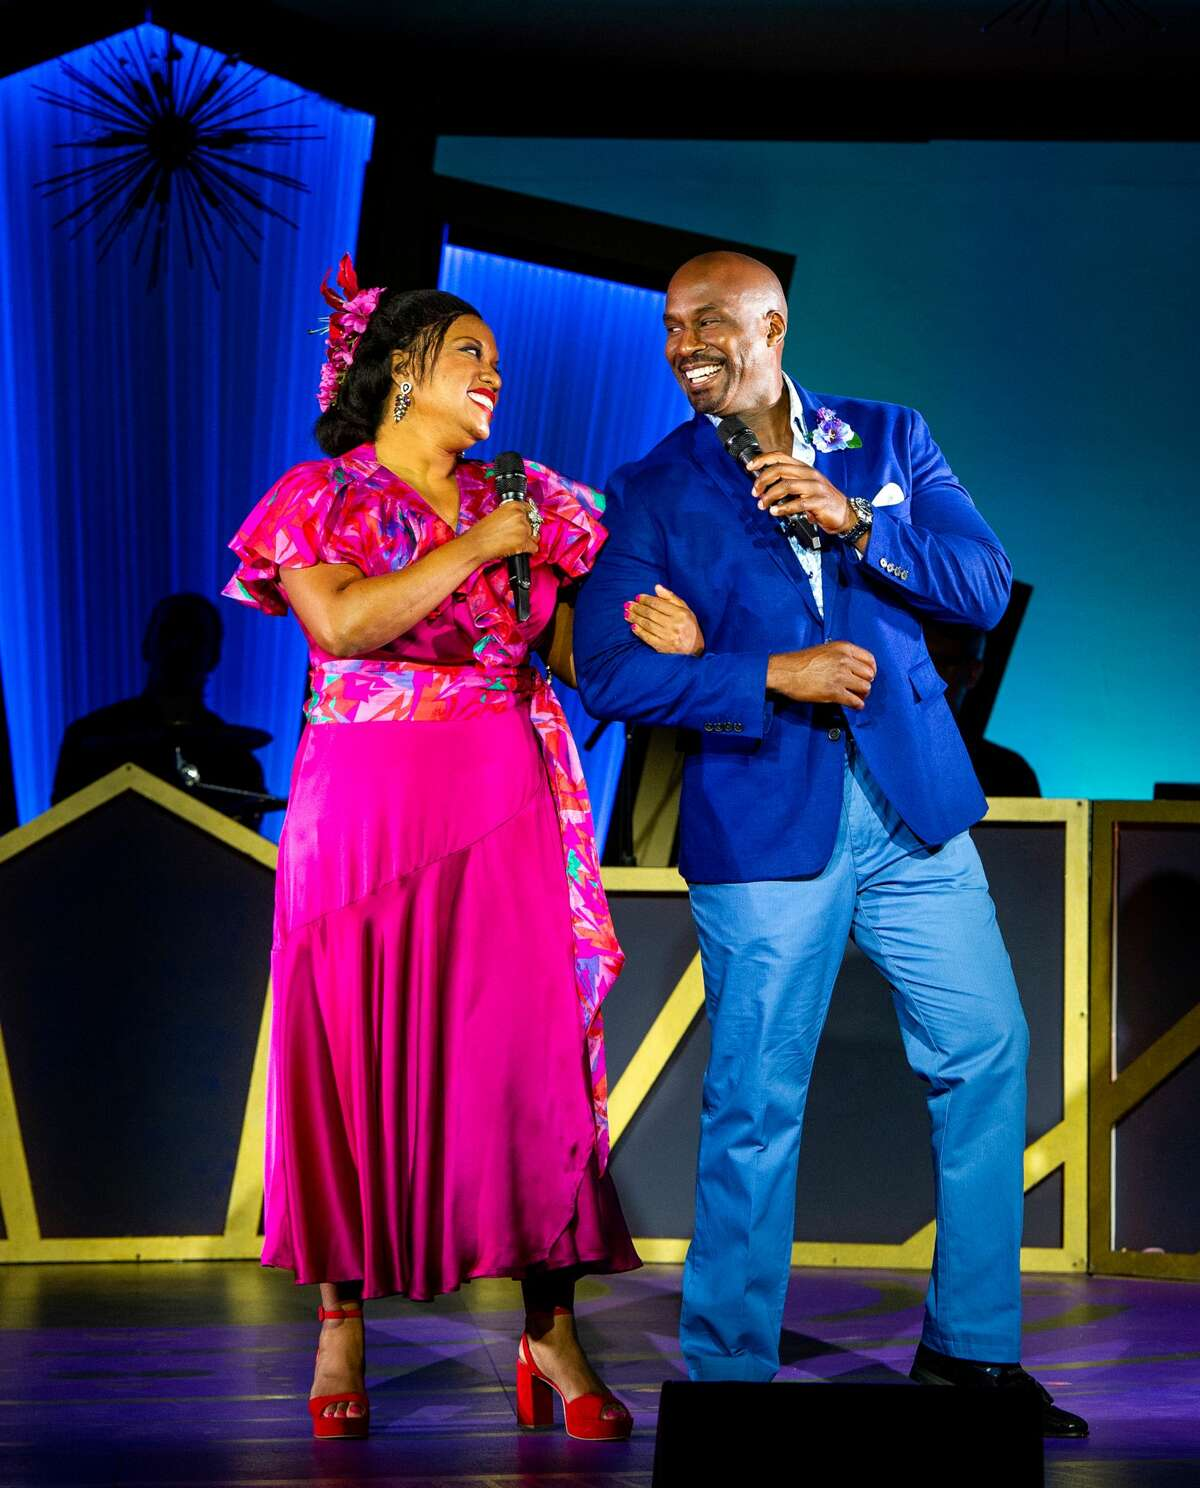 """Allison Blackwell and Alan H. Green in """"Who Could Ask For Anything More?The Songs of George Gershwin,"""" the season-opening production for Barrington Stage Company in Pittsfield, Mass. It runs June 10 to July 3, 2021. (Daniel Rader/BSC.)"""